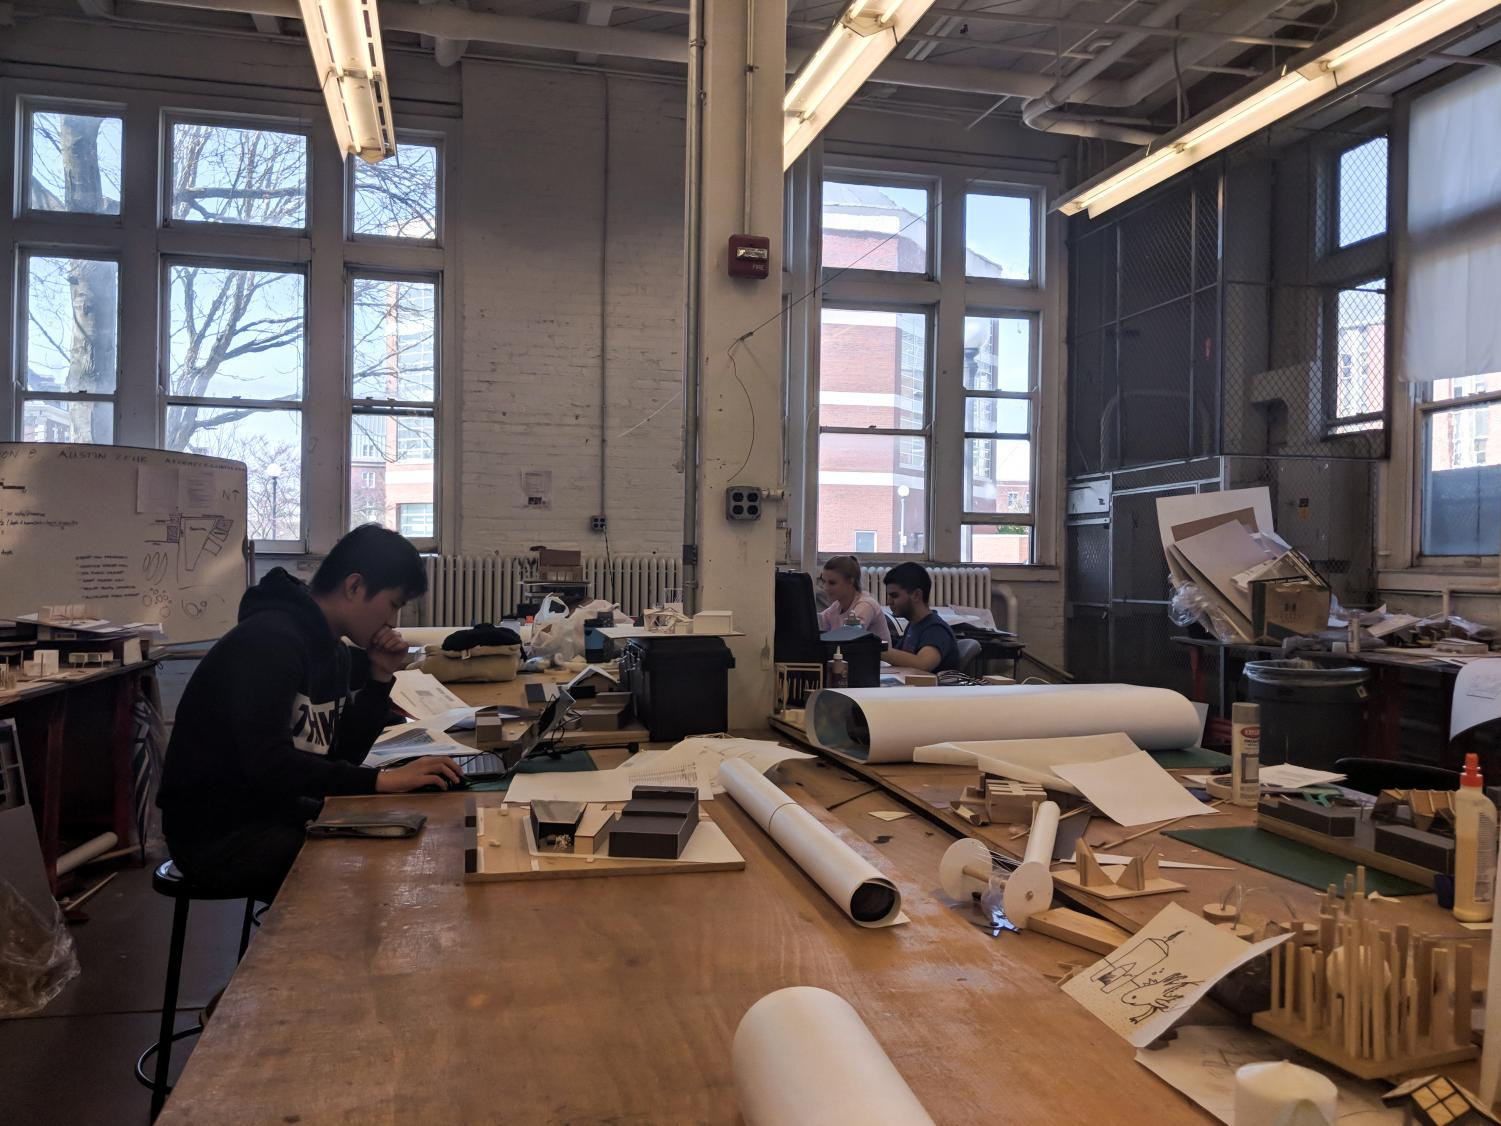 Three sophomores in architecture major are working in the Architecture Annex Studio, 1206 W peabody Dr, Urbana, IL. They are Jasson Partugi, Gabi Zenmaitis, and Miguel Perez (From left to right).